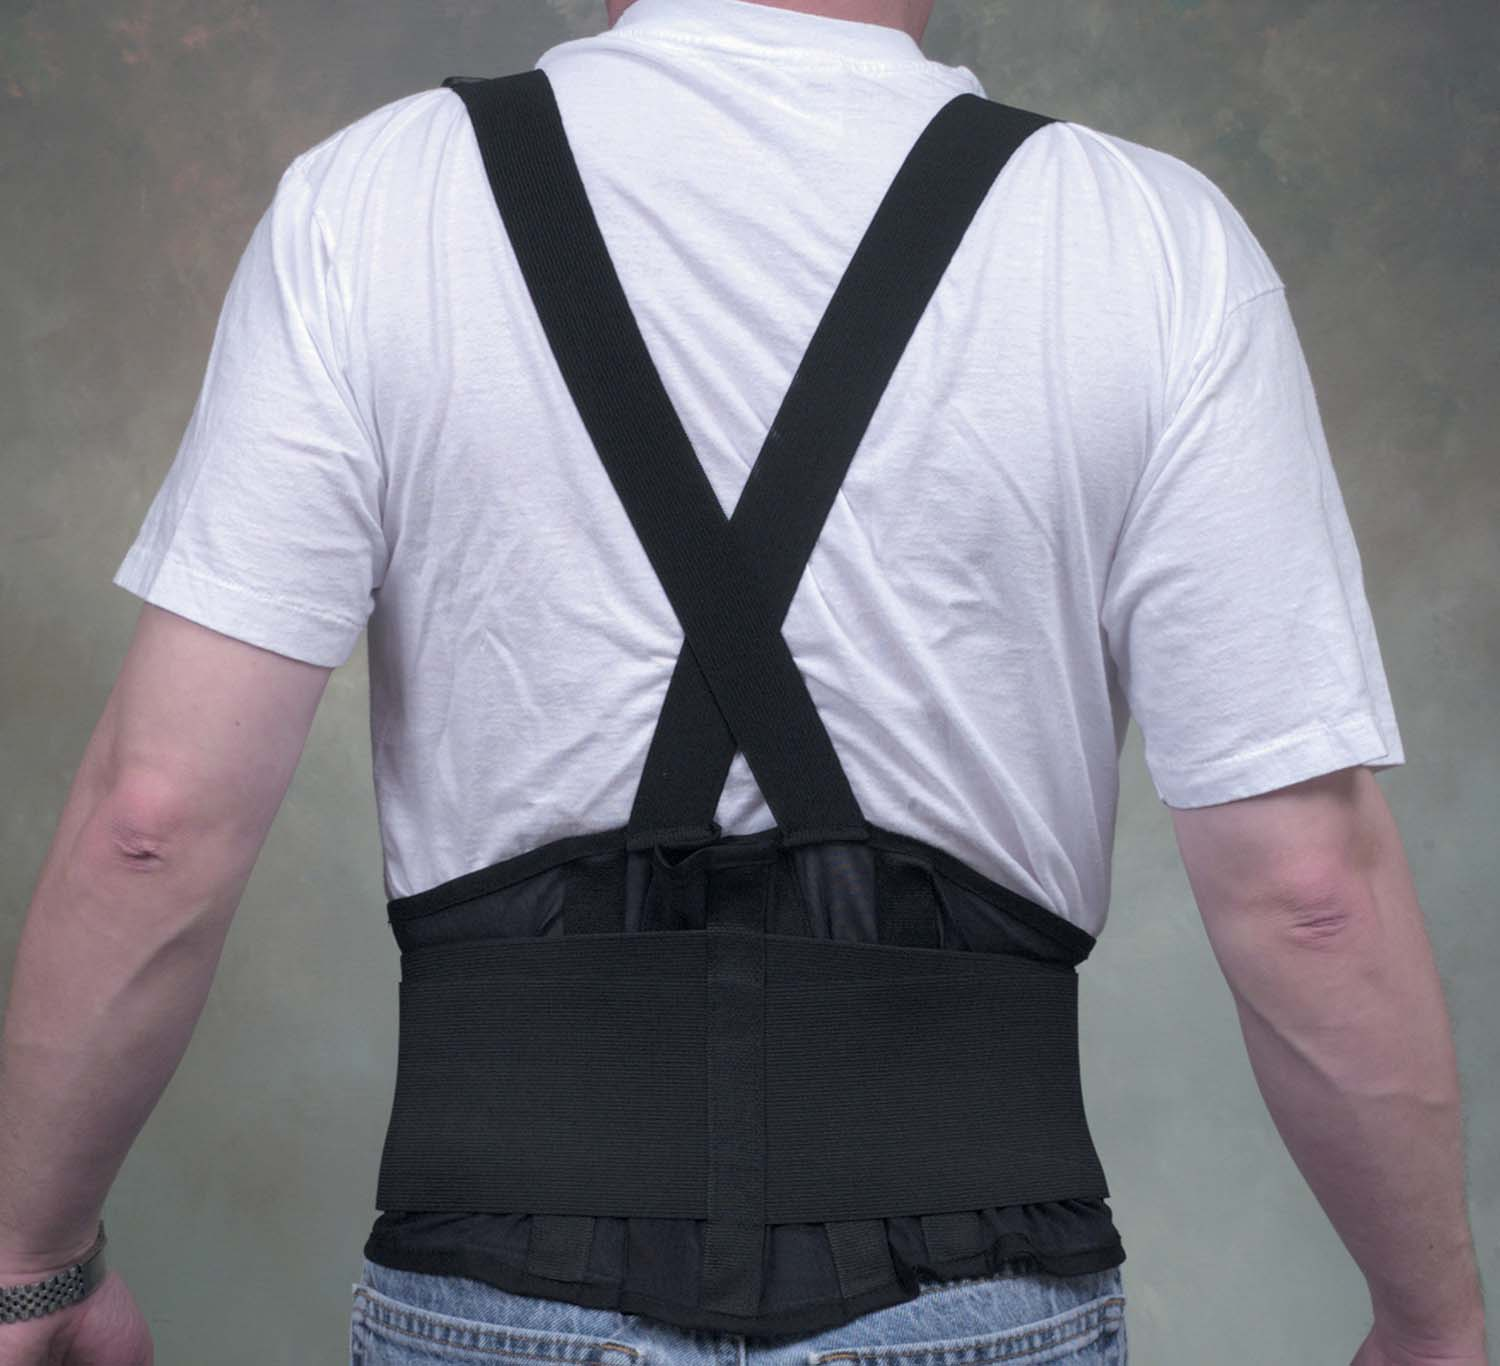 industrial-lumbar-support-w-shoulder-straps-medium-632-6390-0222-lr.jpg